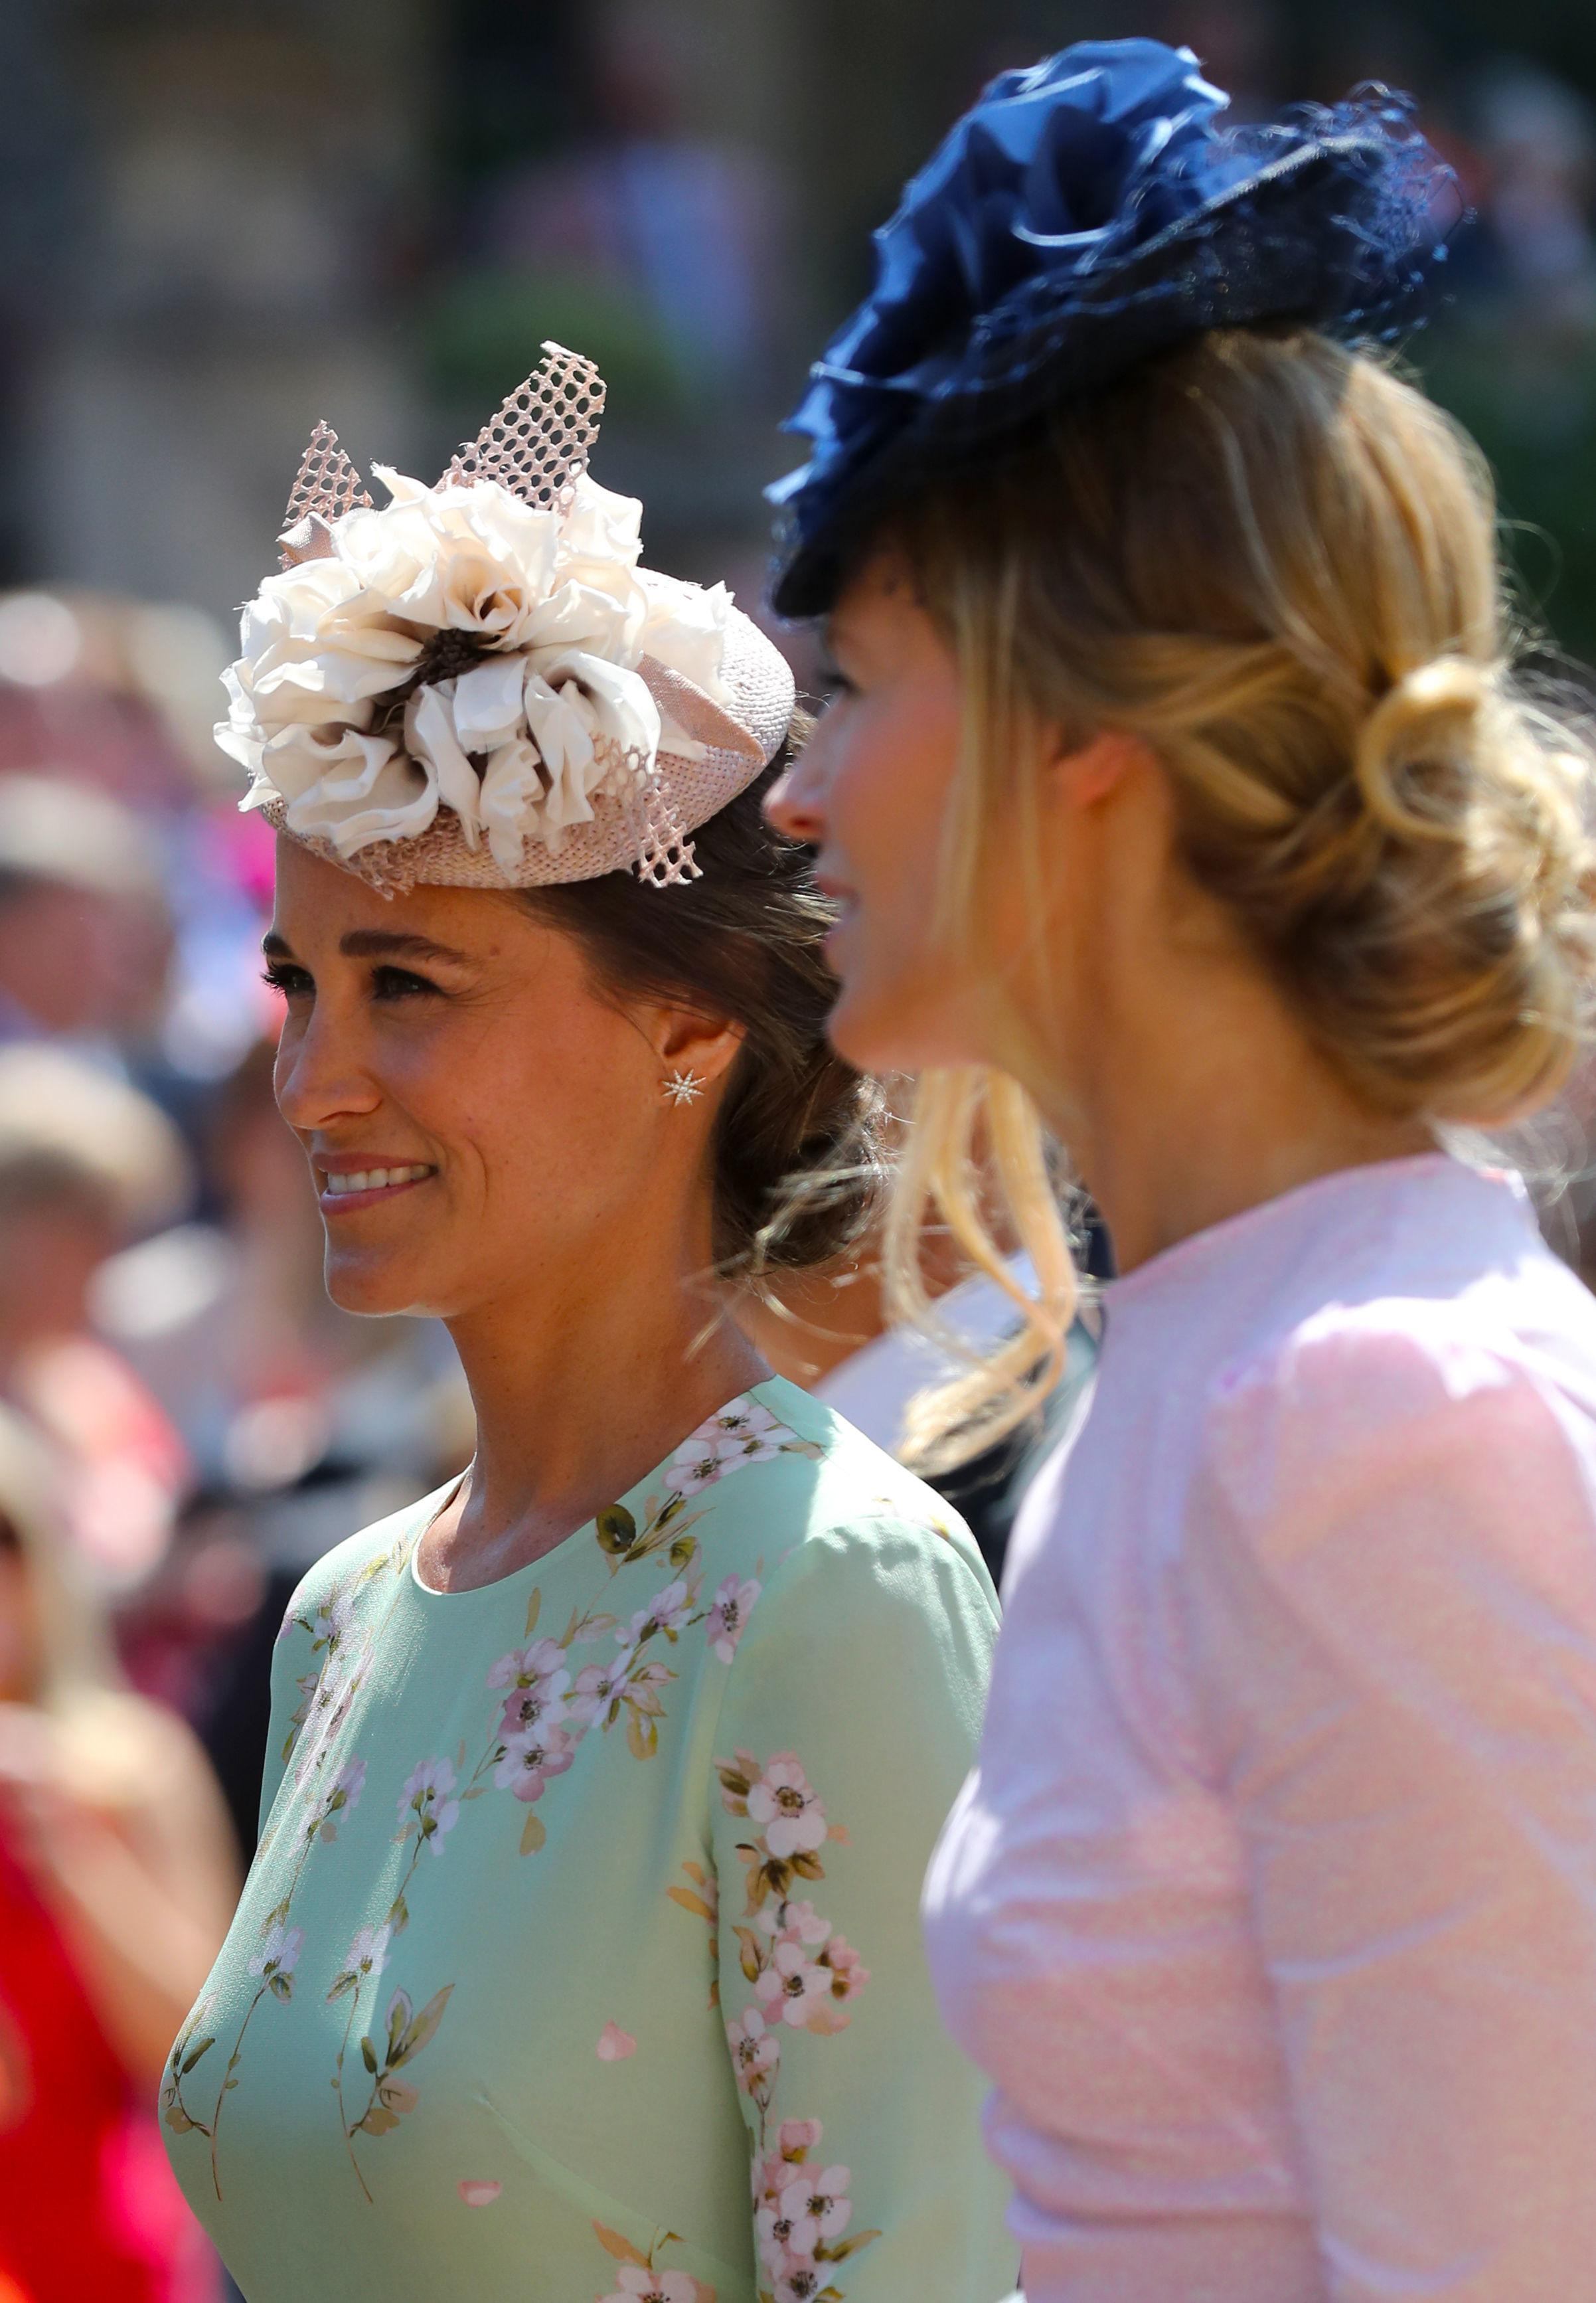 WINDSOR, UNITED KINGDOM - MAY 19:  Pippa Middleton leaves St George's Chapel at Windsor Castle after the wedding of Prince Harry to Meghan Markle on May 19, 2018 in Windsor, England. (Photo by Gareth Fuller - WPA Pool/Getty Images)